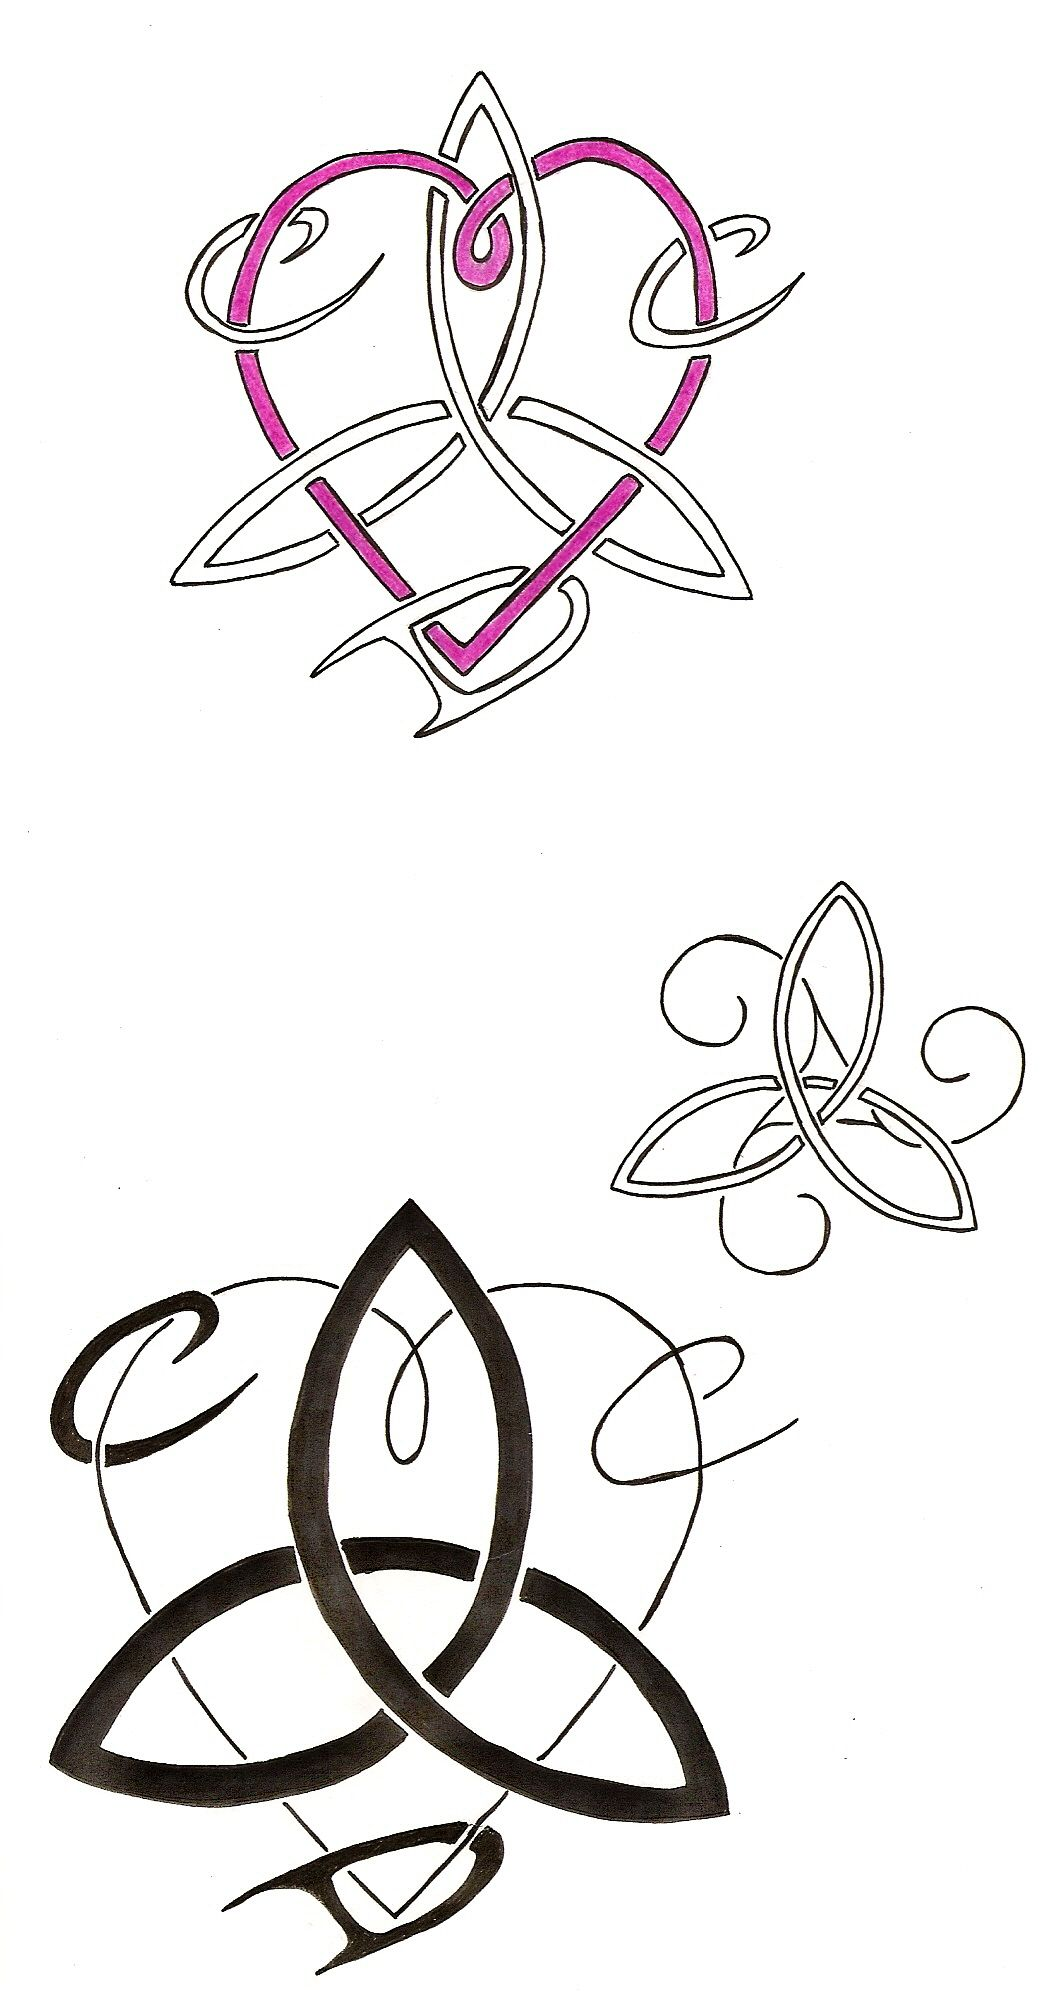 Tatuajes amistad tatuajes de amistad pinterest tattoo are you looking to get a tattoo symbol for sister love and connection three sisters tattoos by sinistervibe on deviantart buycottarizona